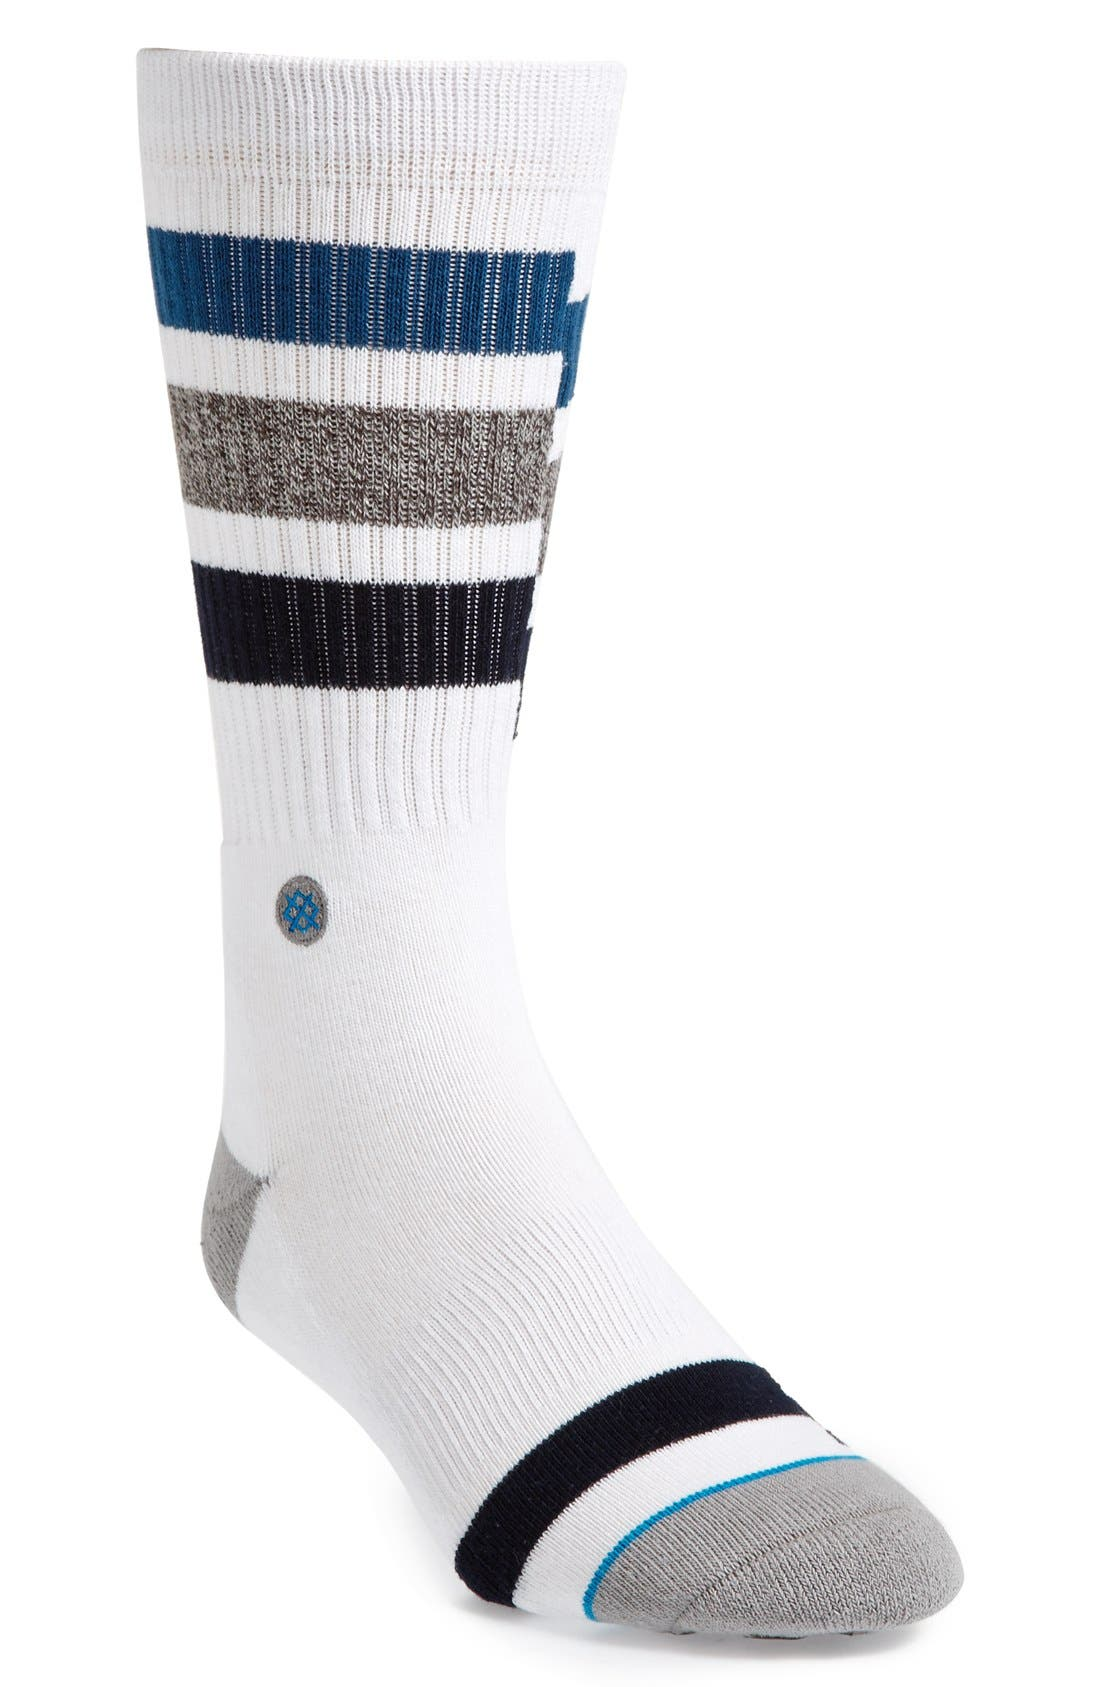 Alternate Image 1 Selected - Stance 'Abbott' Socks